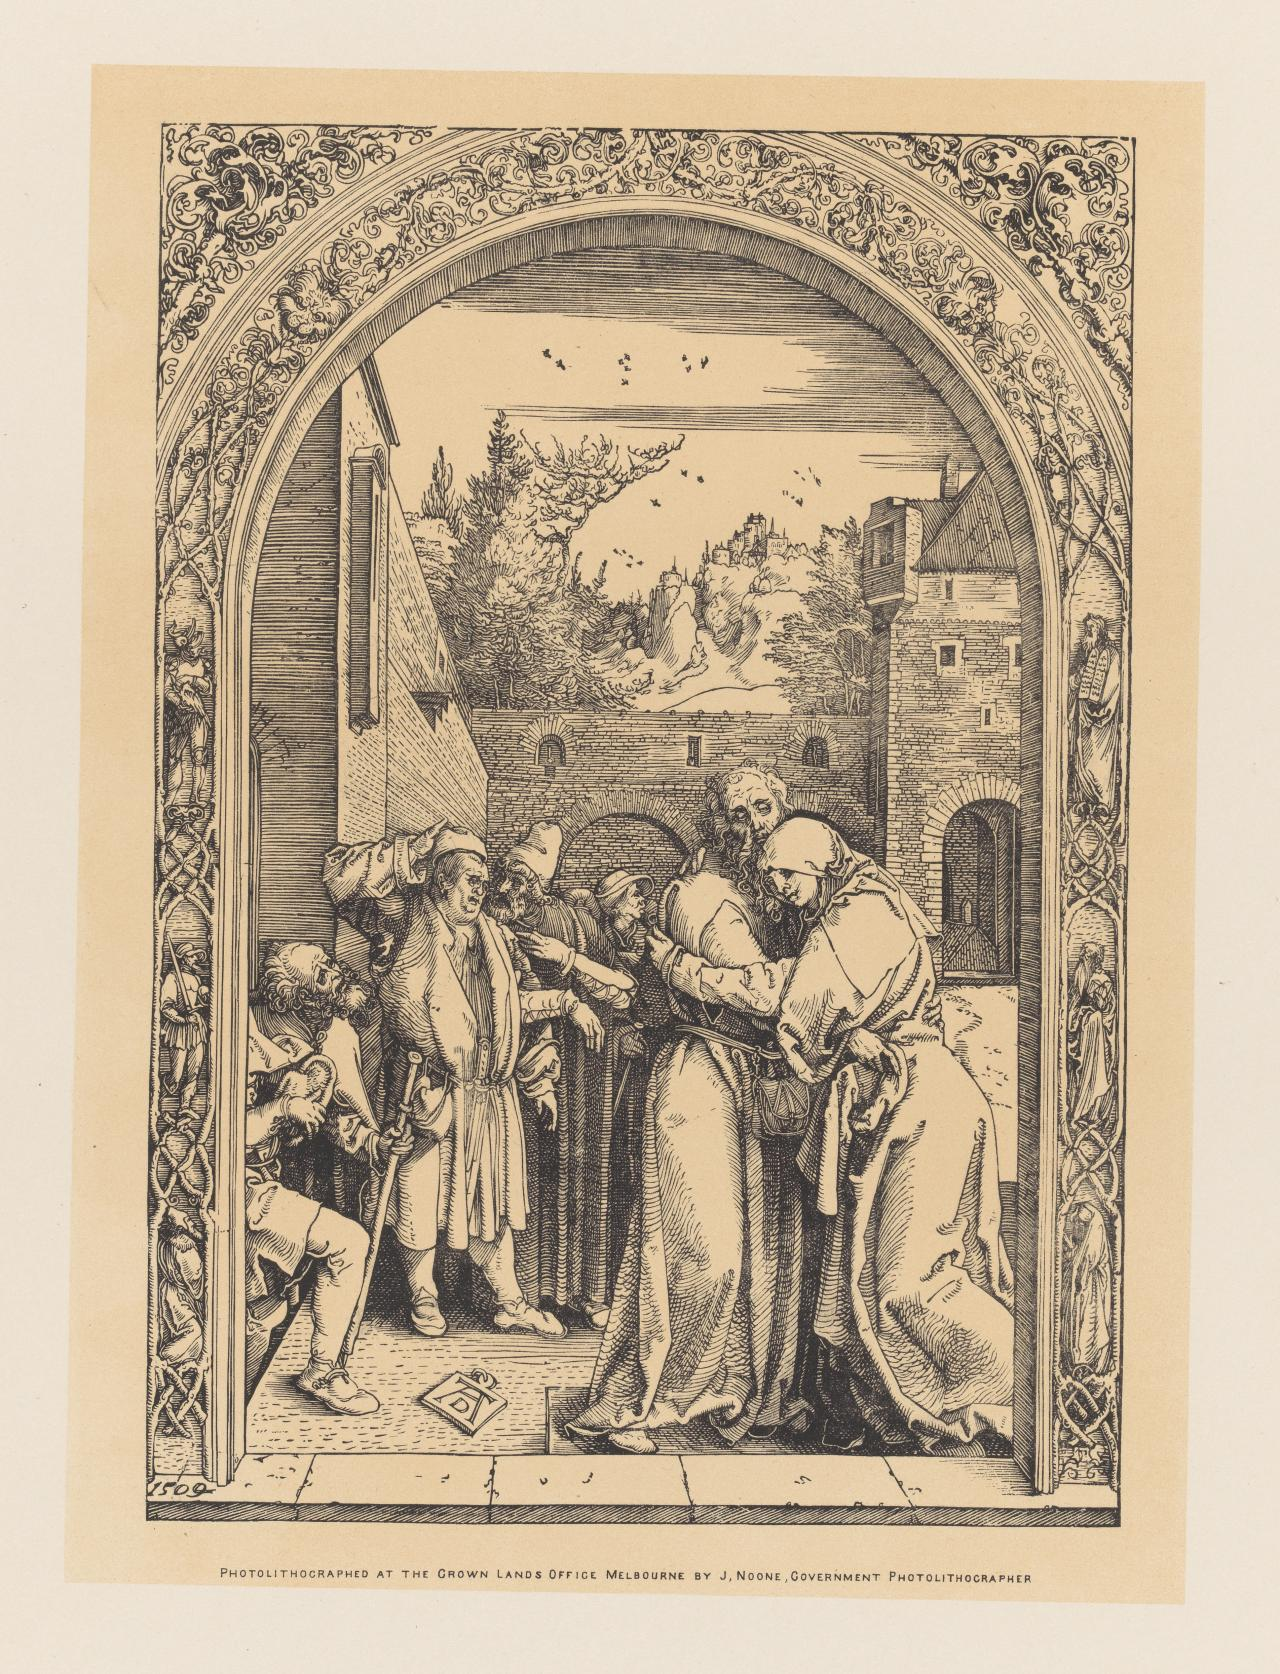 St Joachim embraces St. Anne under the Golden Gate, from the series The Life of the Virgin Mary.